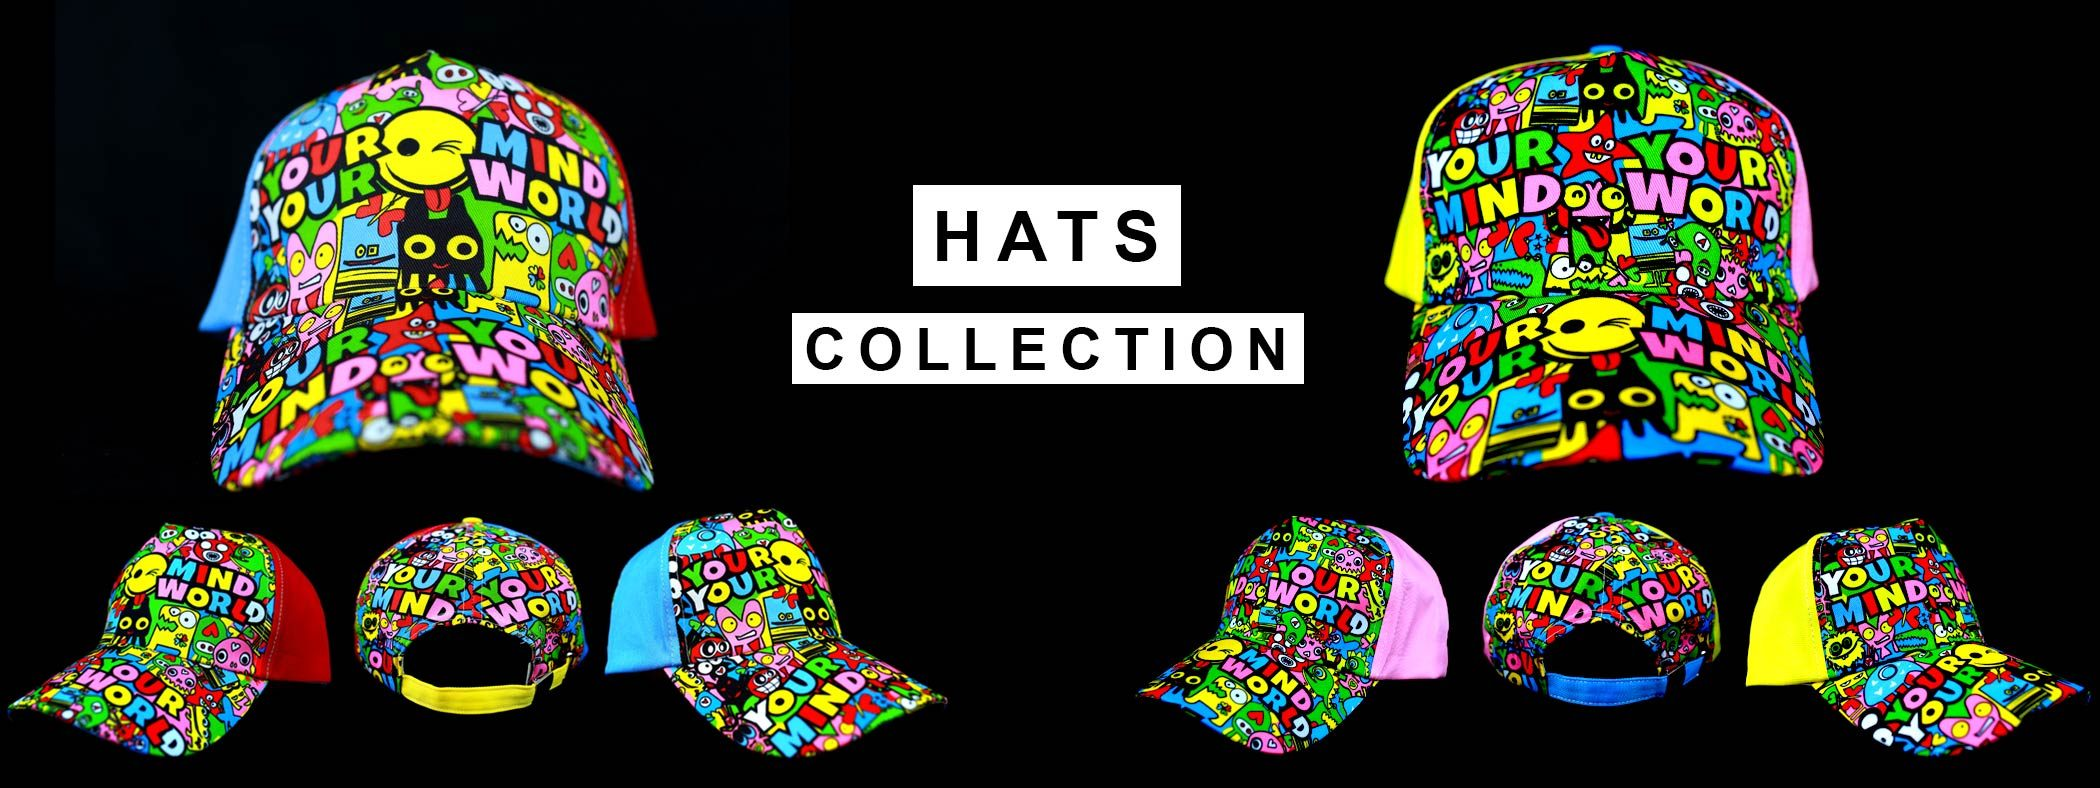 YMYW-Hats-Collection-Banner